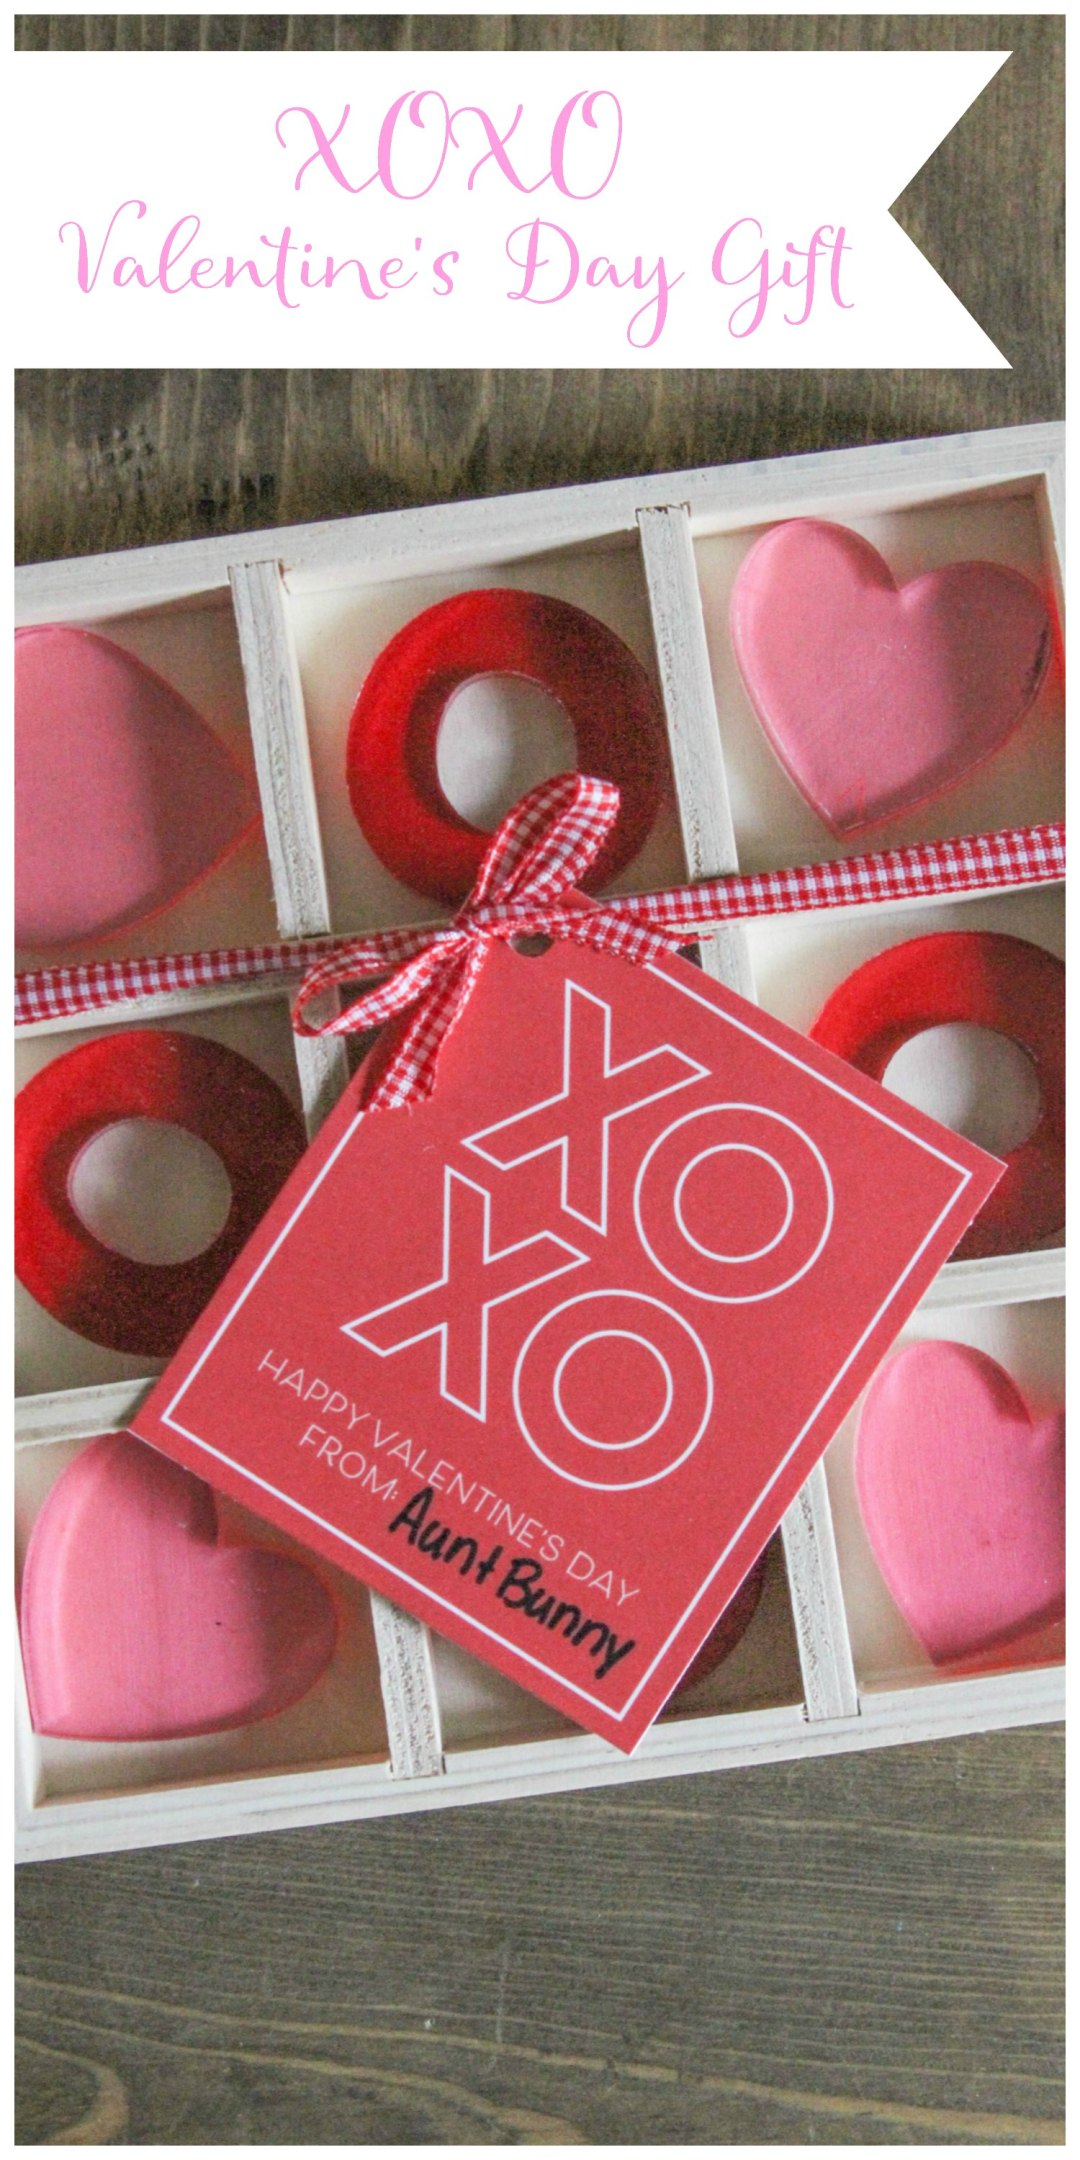 Everyday Party Magazine Valentine's Day Gift for Your Little Love